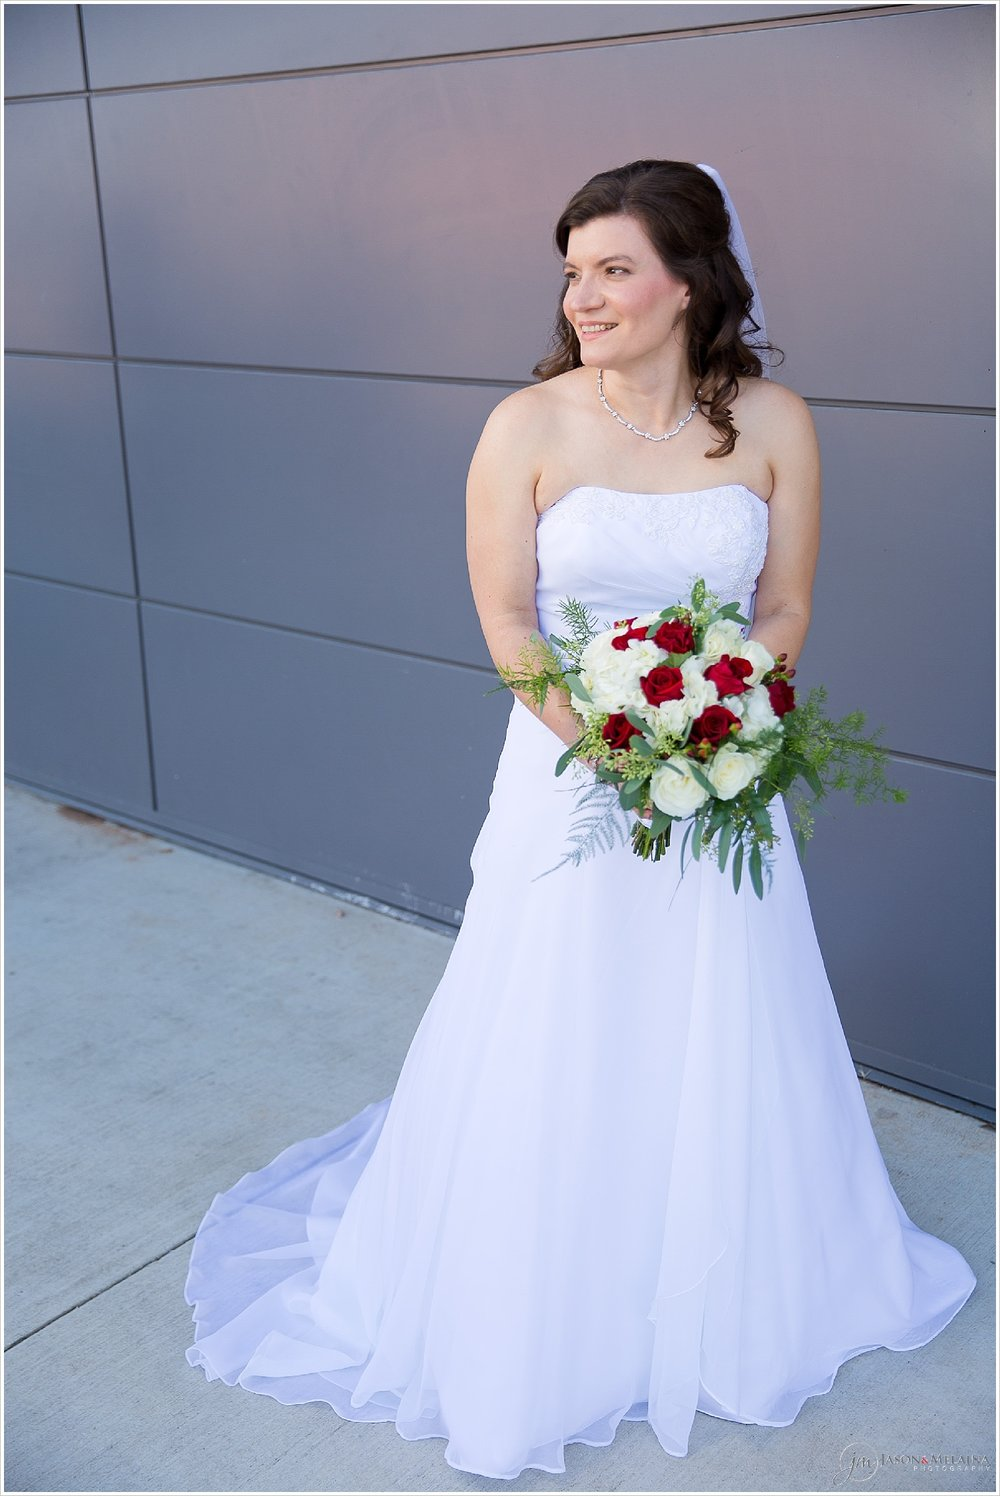 Bride with red and white rose bouquet poses outside Antioch Community Church in Waco, Texas